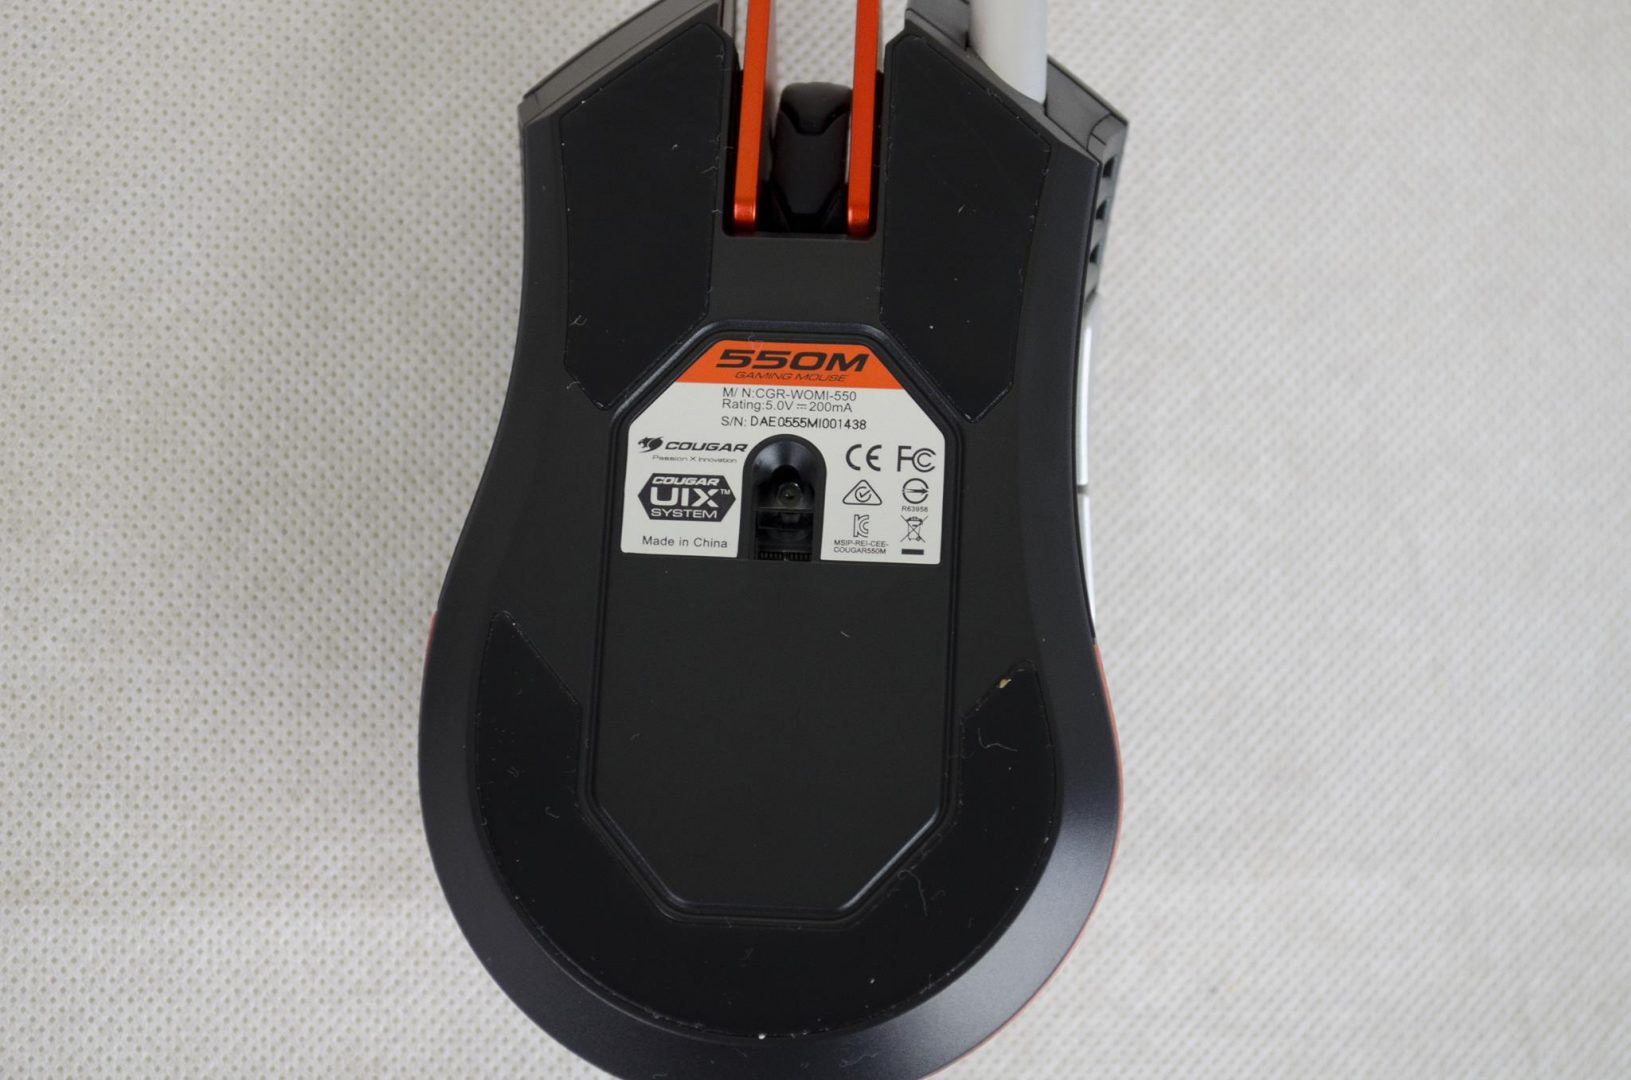 Cougar 550M Gaming Mouse Review_6